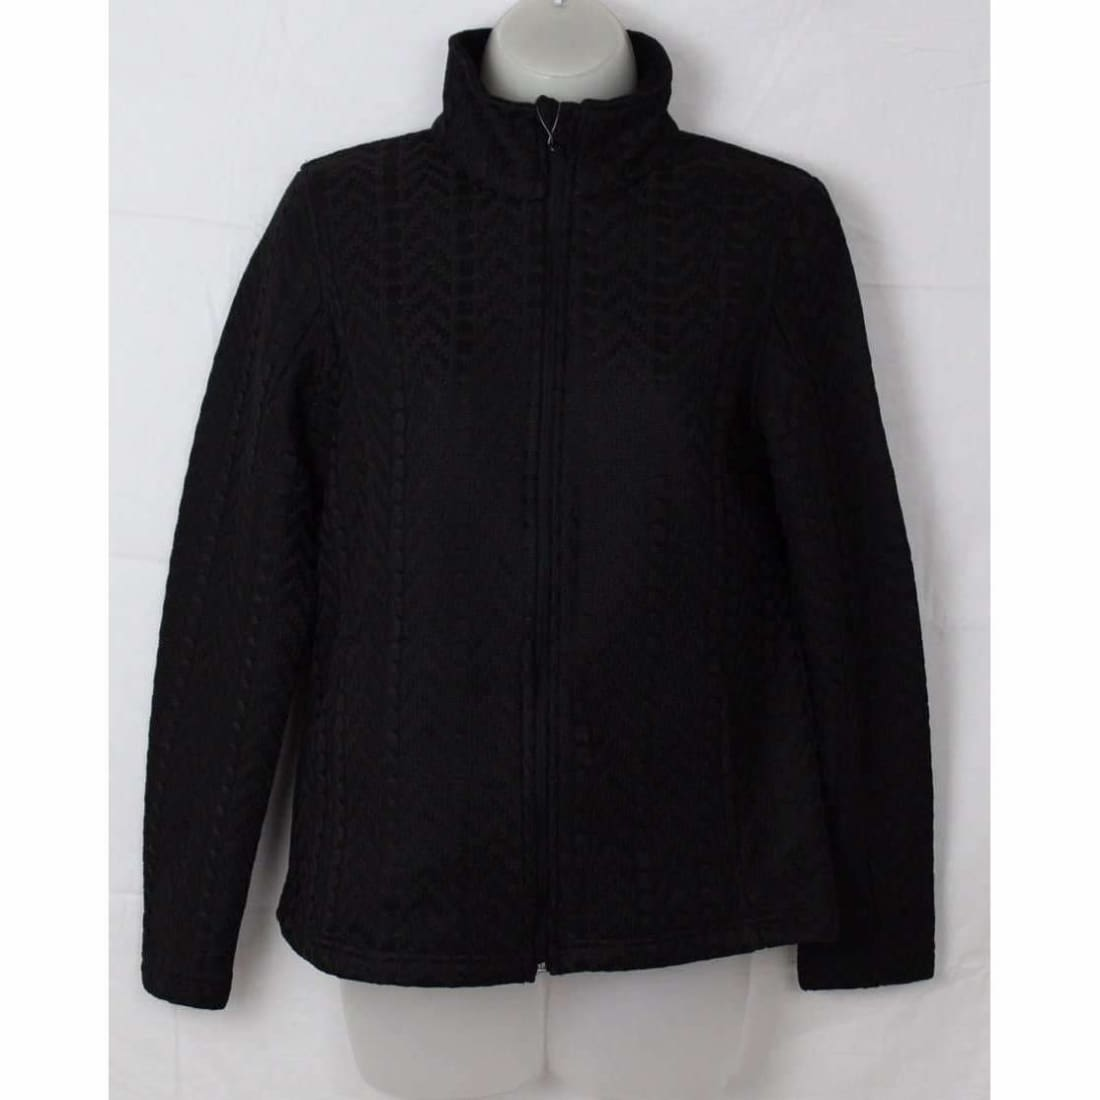 Boston Traders Ladies Cable Knit Sweater Jacket S / Black Outerwear